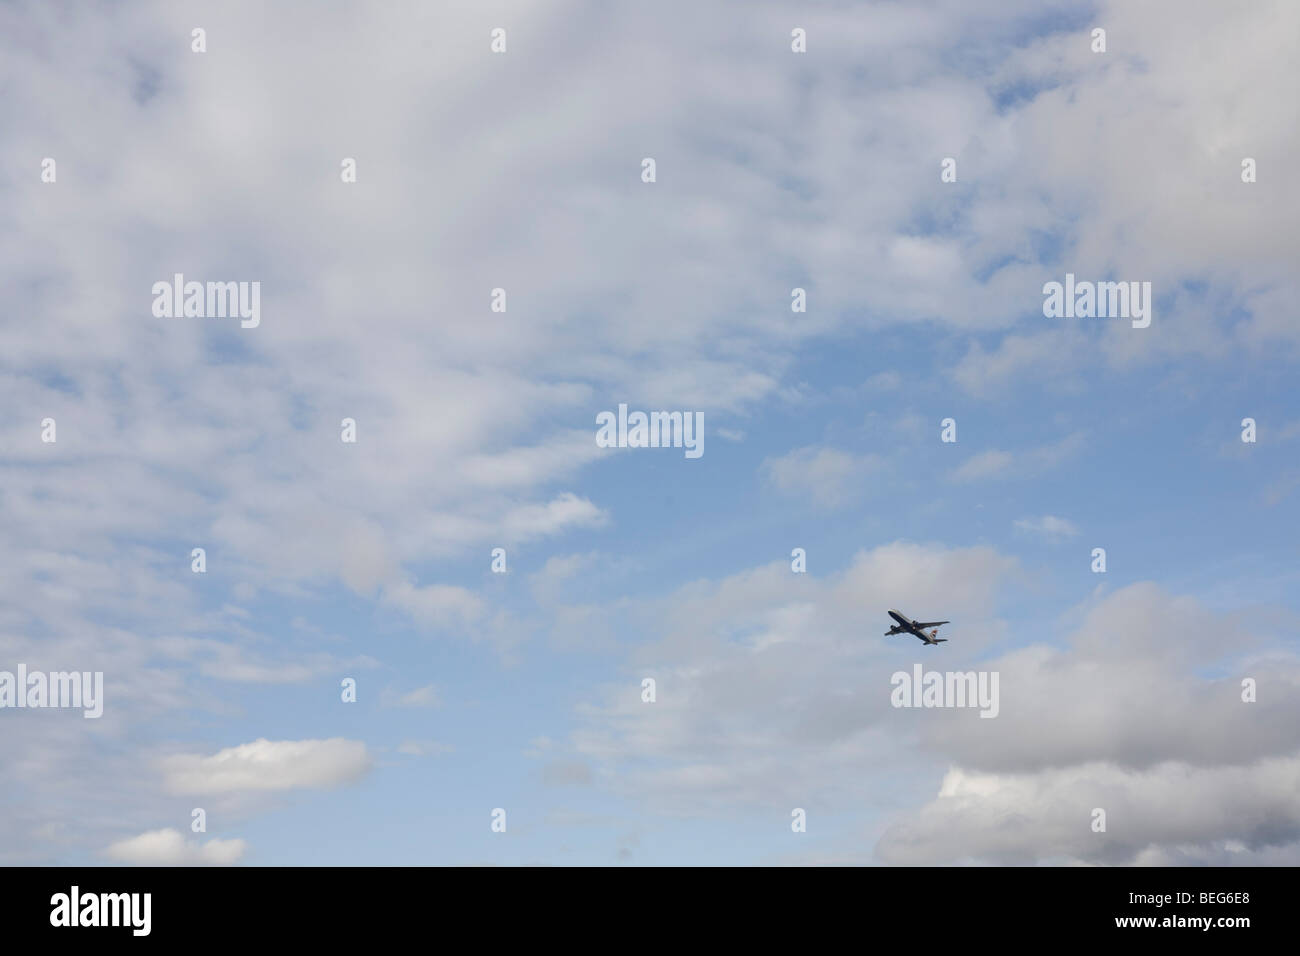 Third of a sequence of 8 consecutive images, a jet airliner takes-off over afternoon skies above London's Heathrow - Stock Image